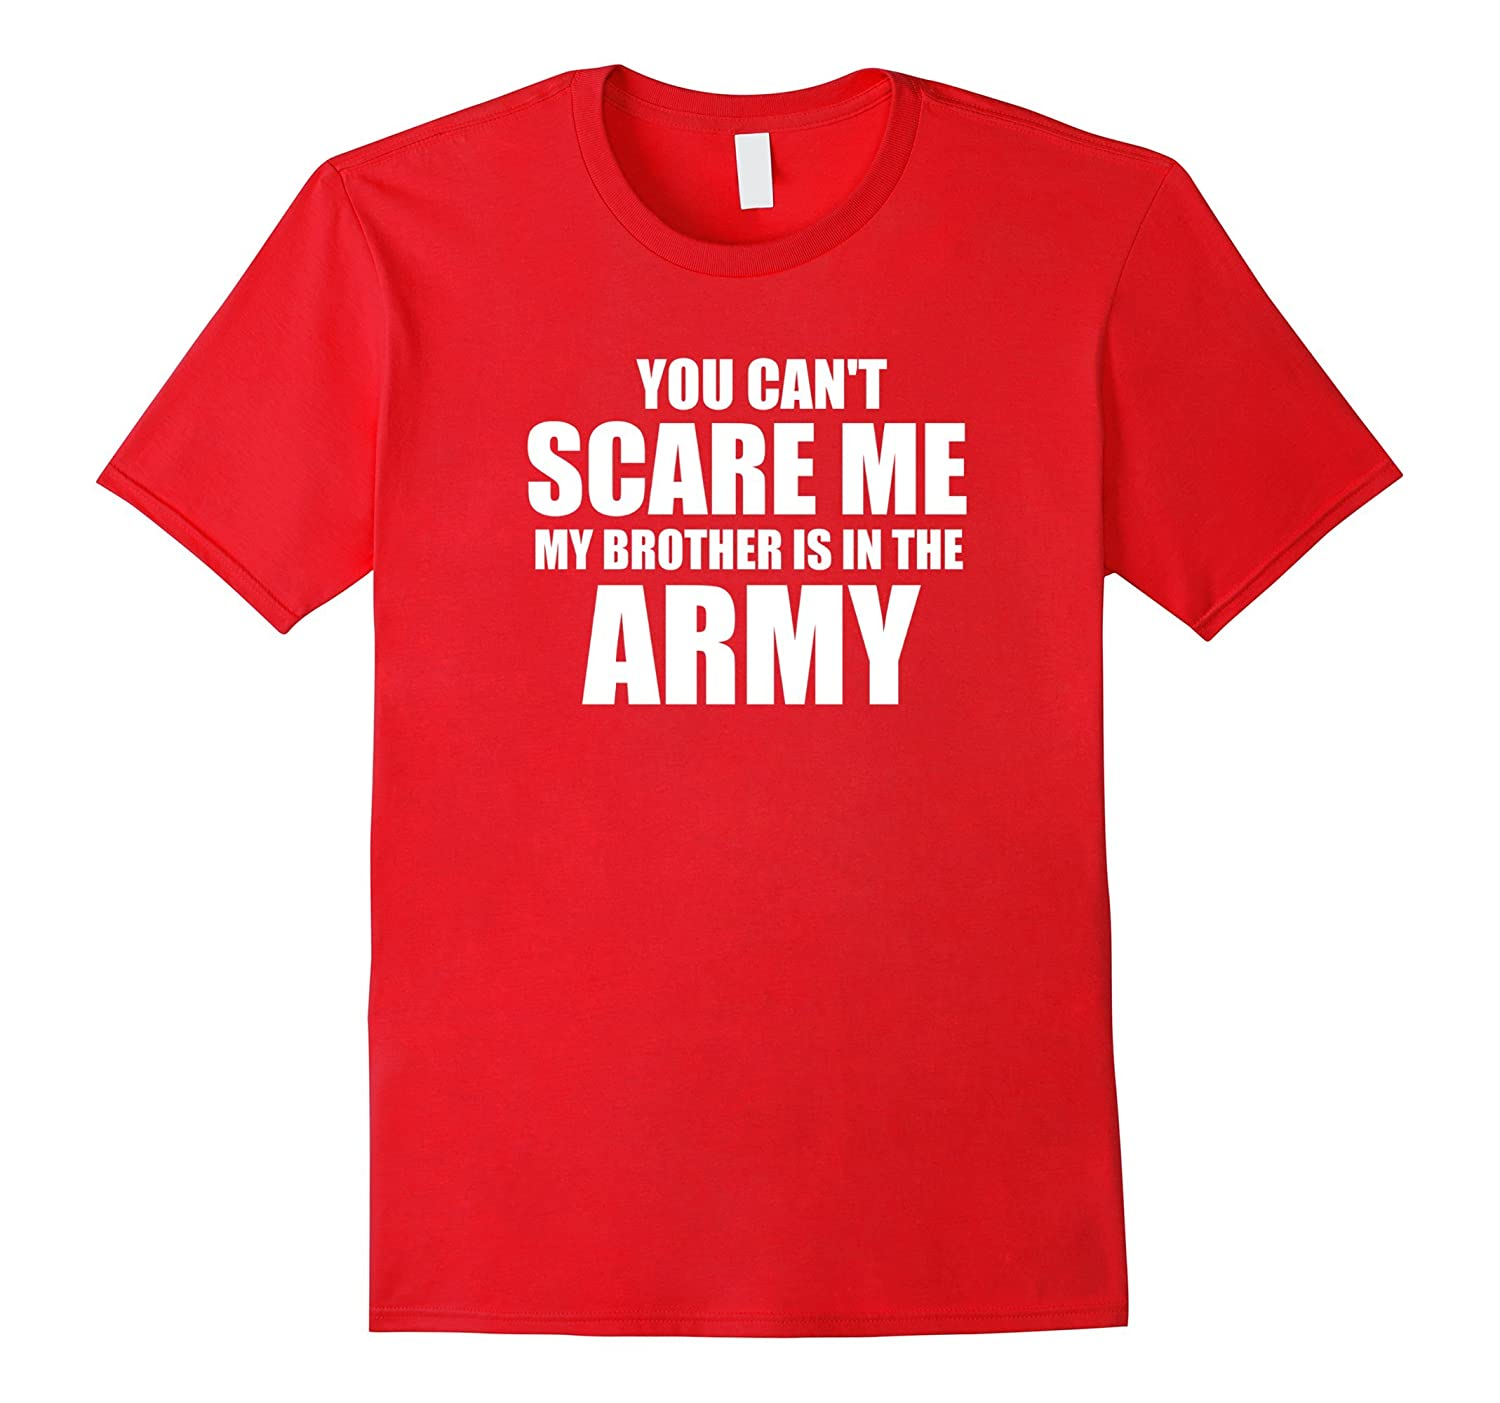 You can't scare me my brother is in the army-TH